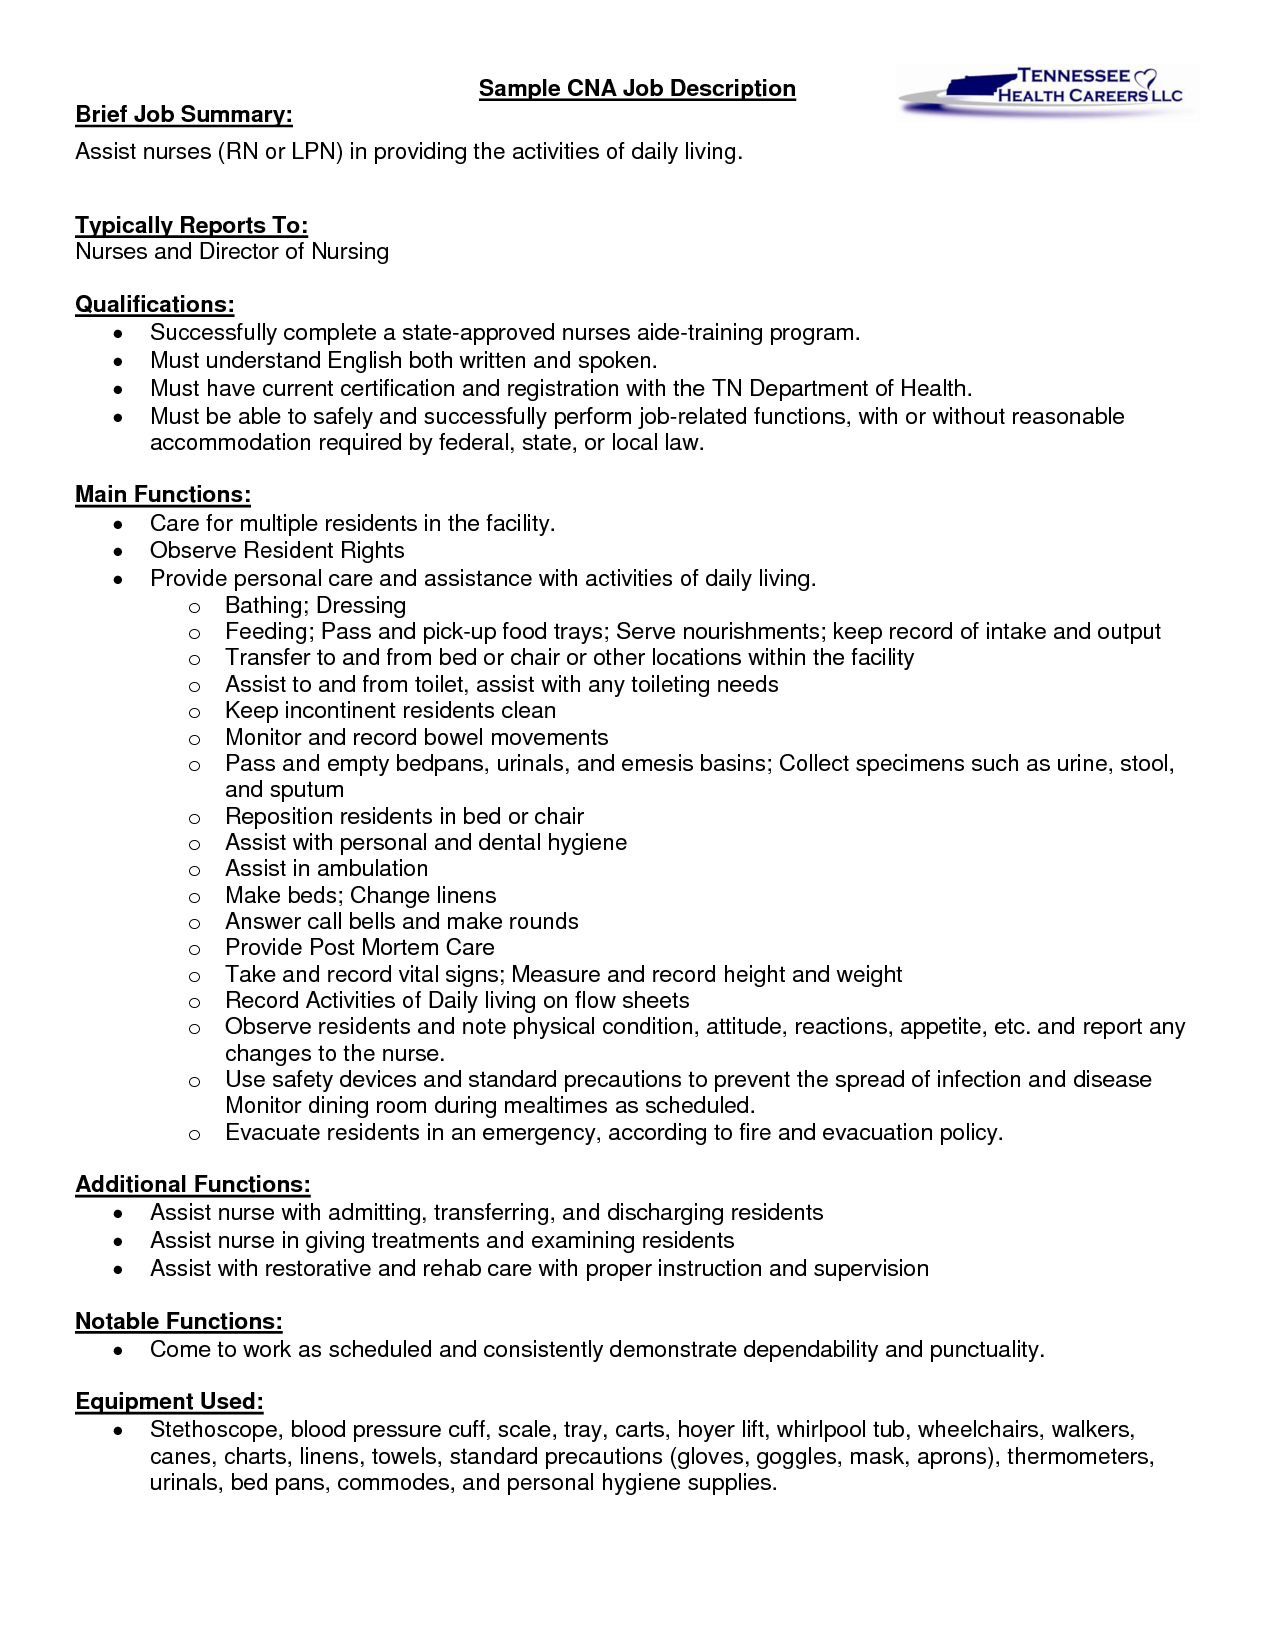 certified nursing assistant description resume cipanewsletter cna job description duties for resume perfect resume 2017